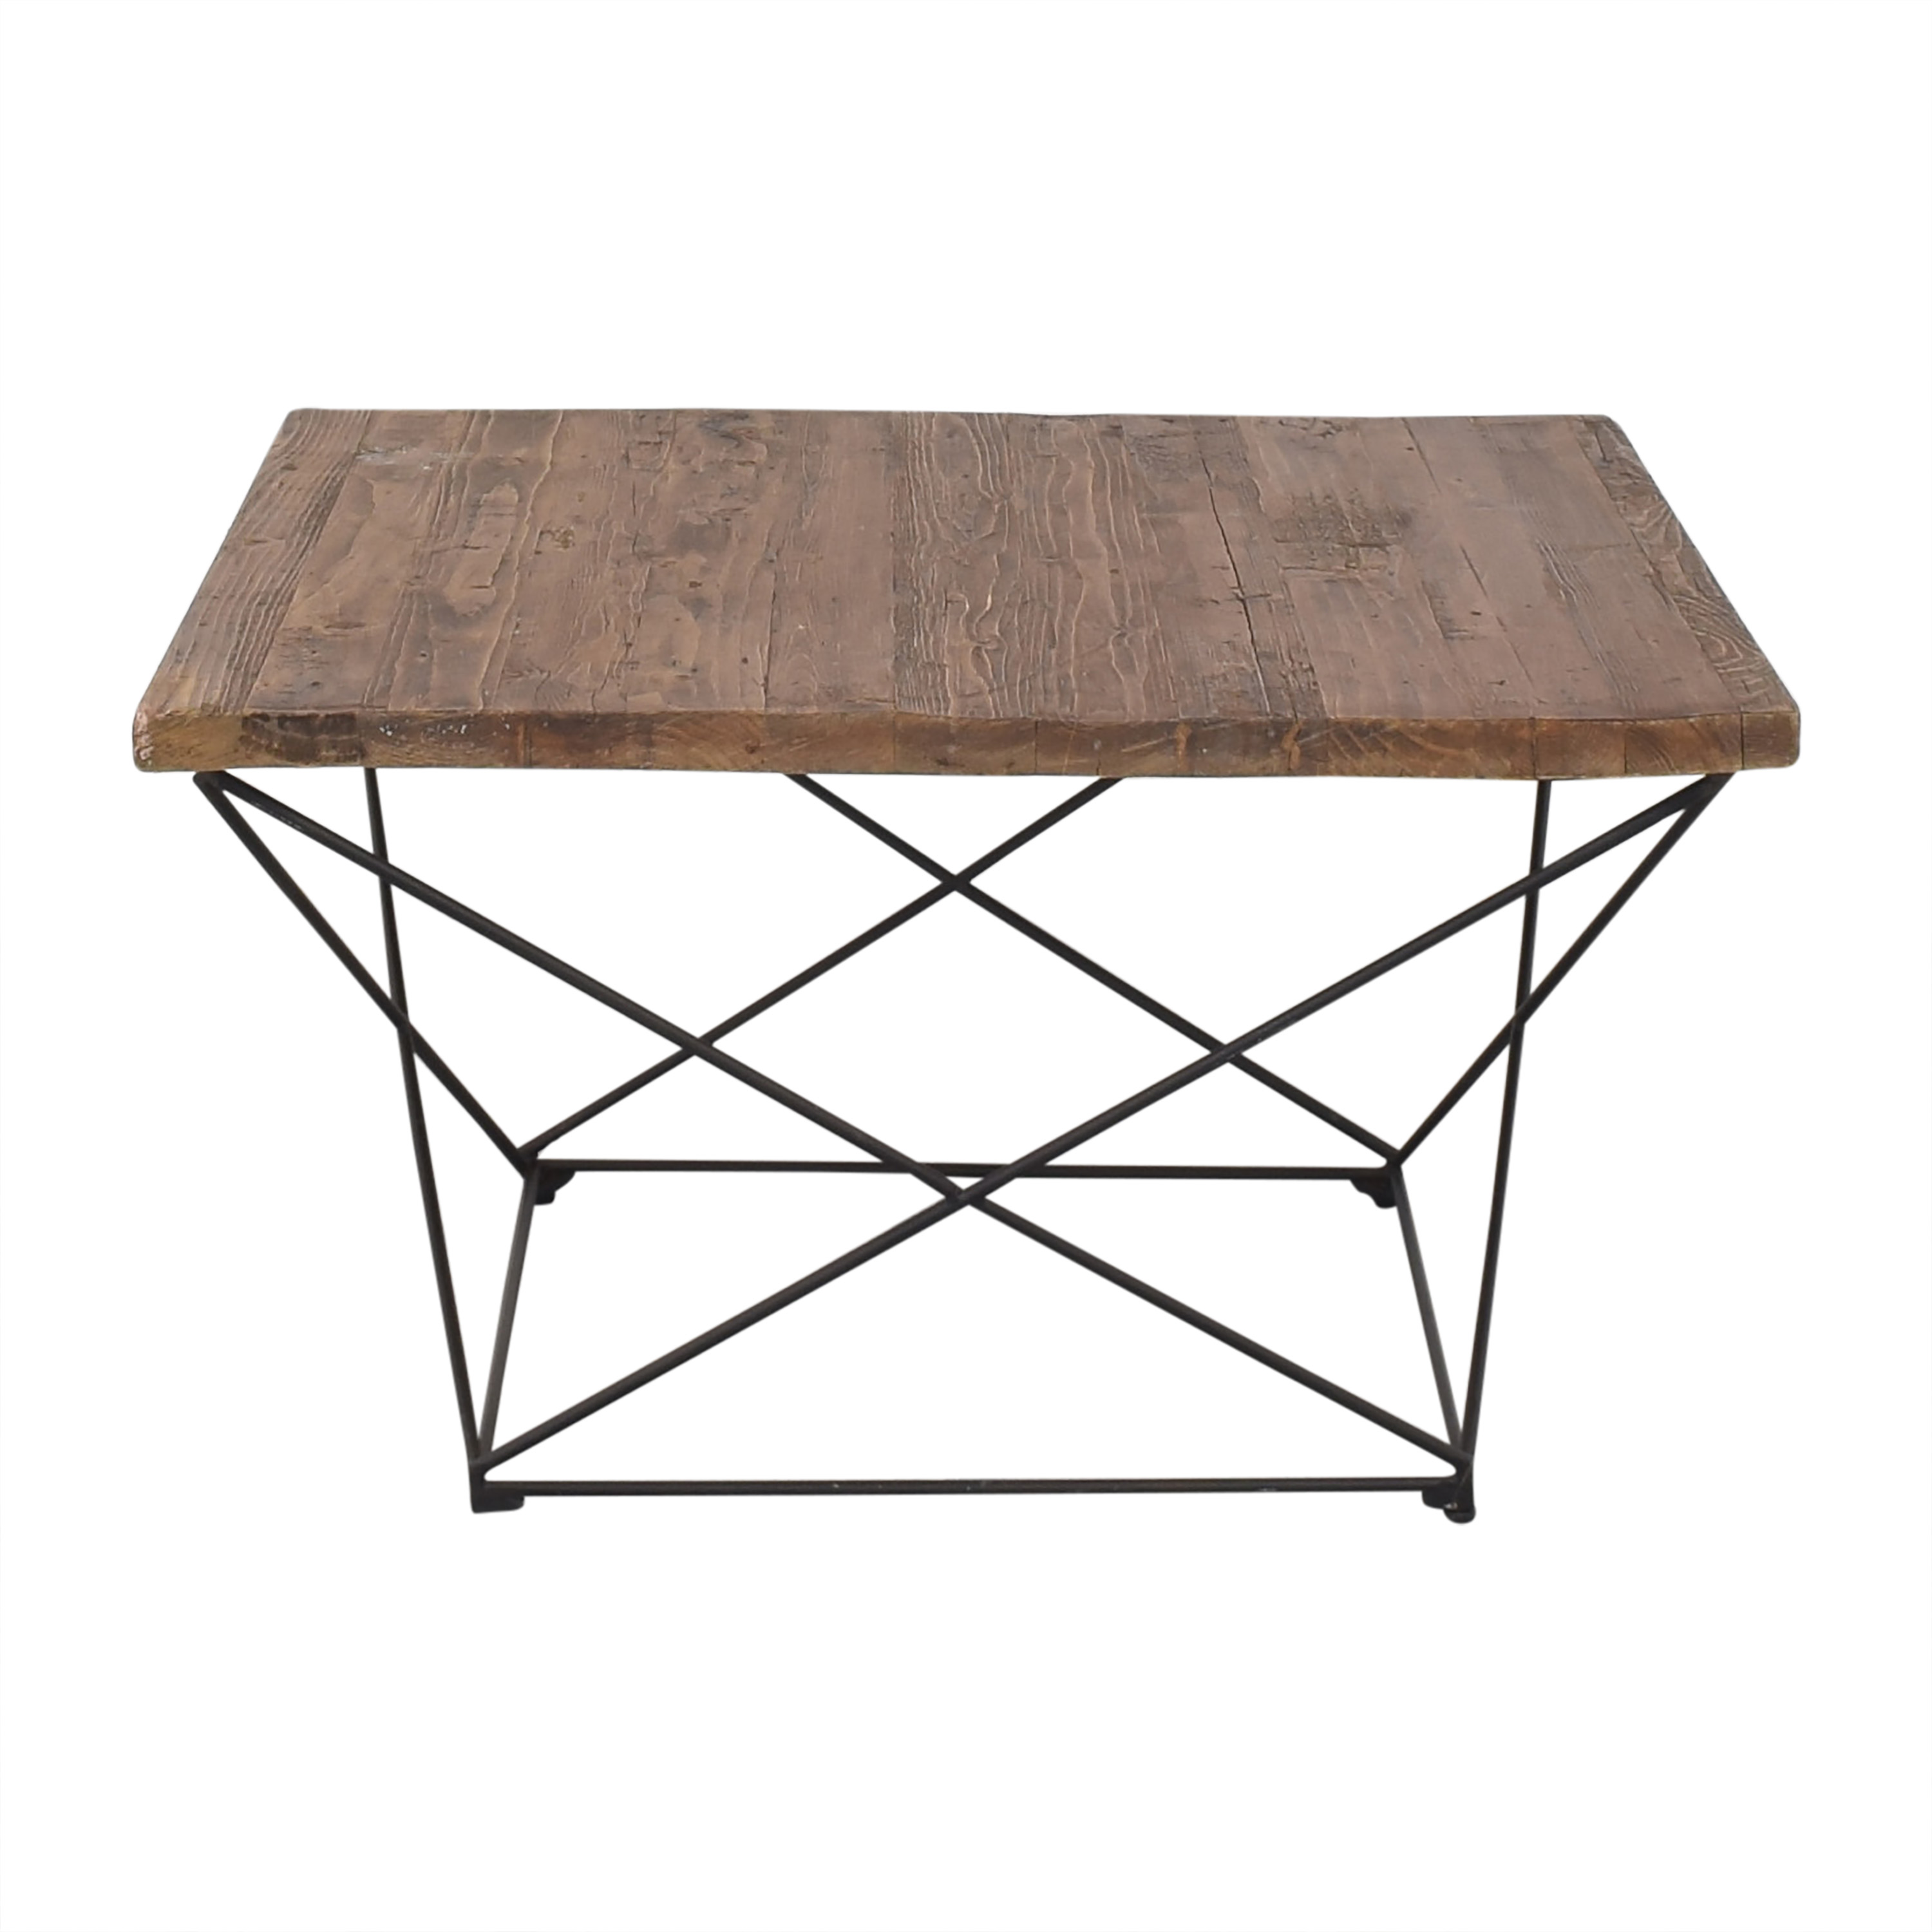 West Elm West Elm Angled Base Coffee Table price